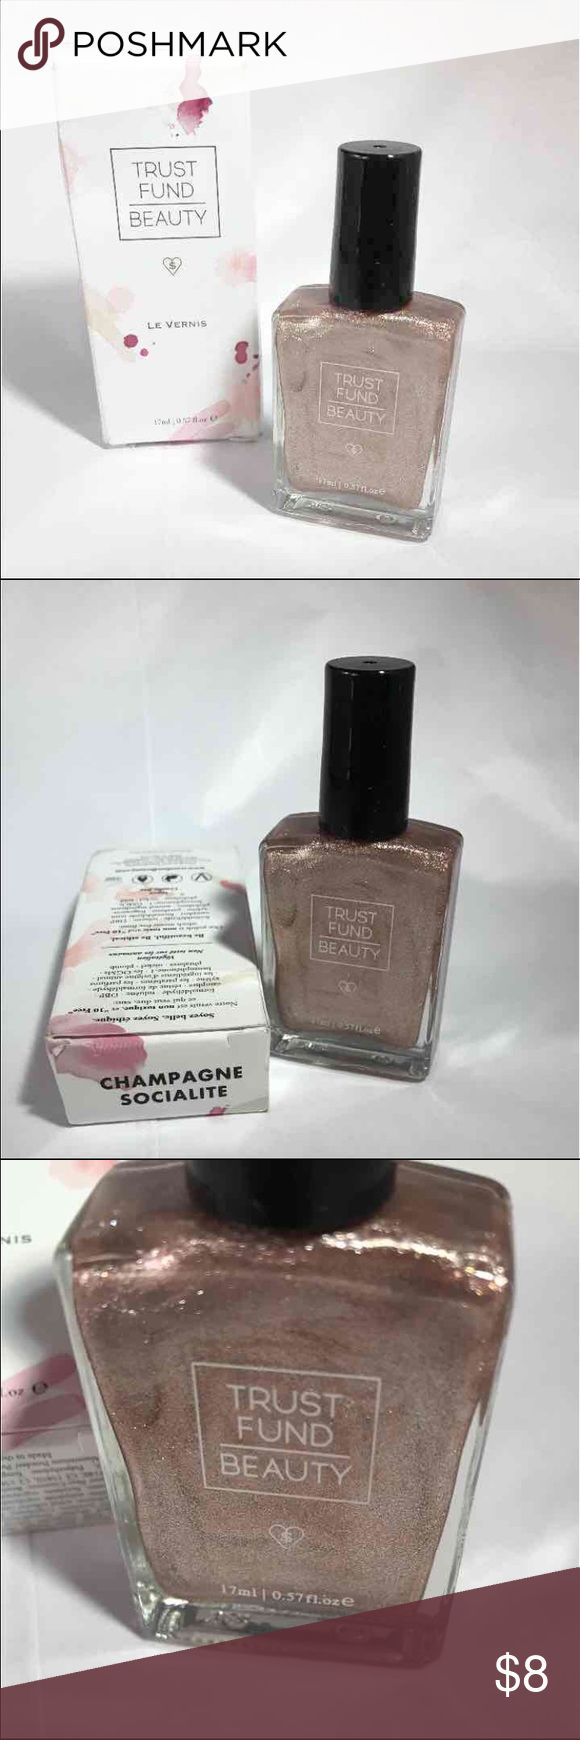 Trust Fund Beauty Champagne Socialite Nail Polish New in box Trust Fund Beauty Nail Polish Champagne Socialite 0.57 fl.oz / 17 ml Trust Fund Beauty Makeup